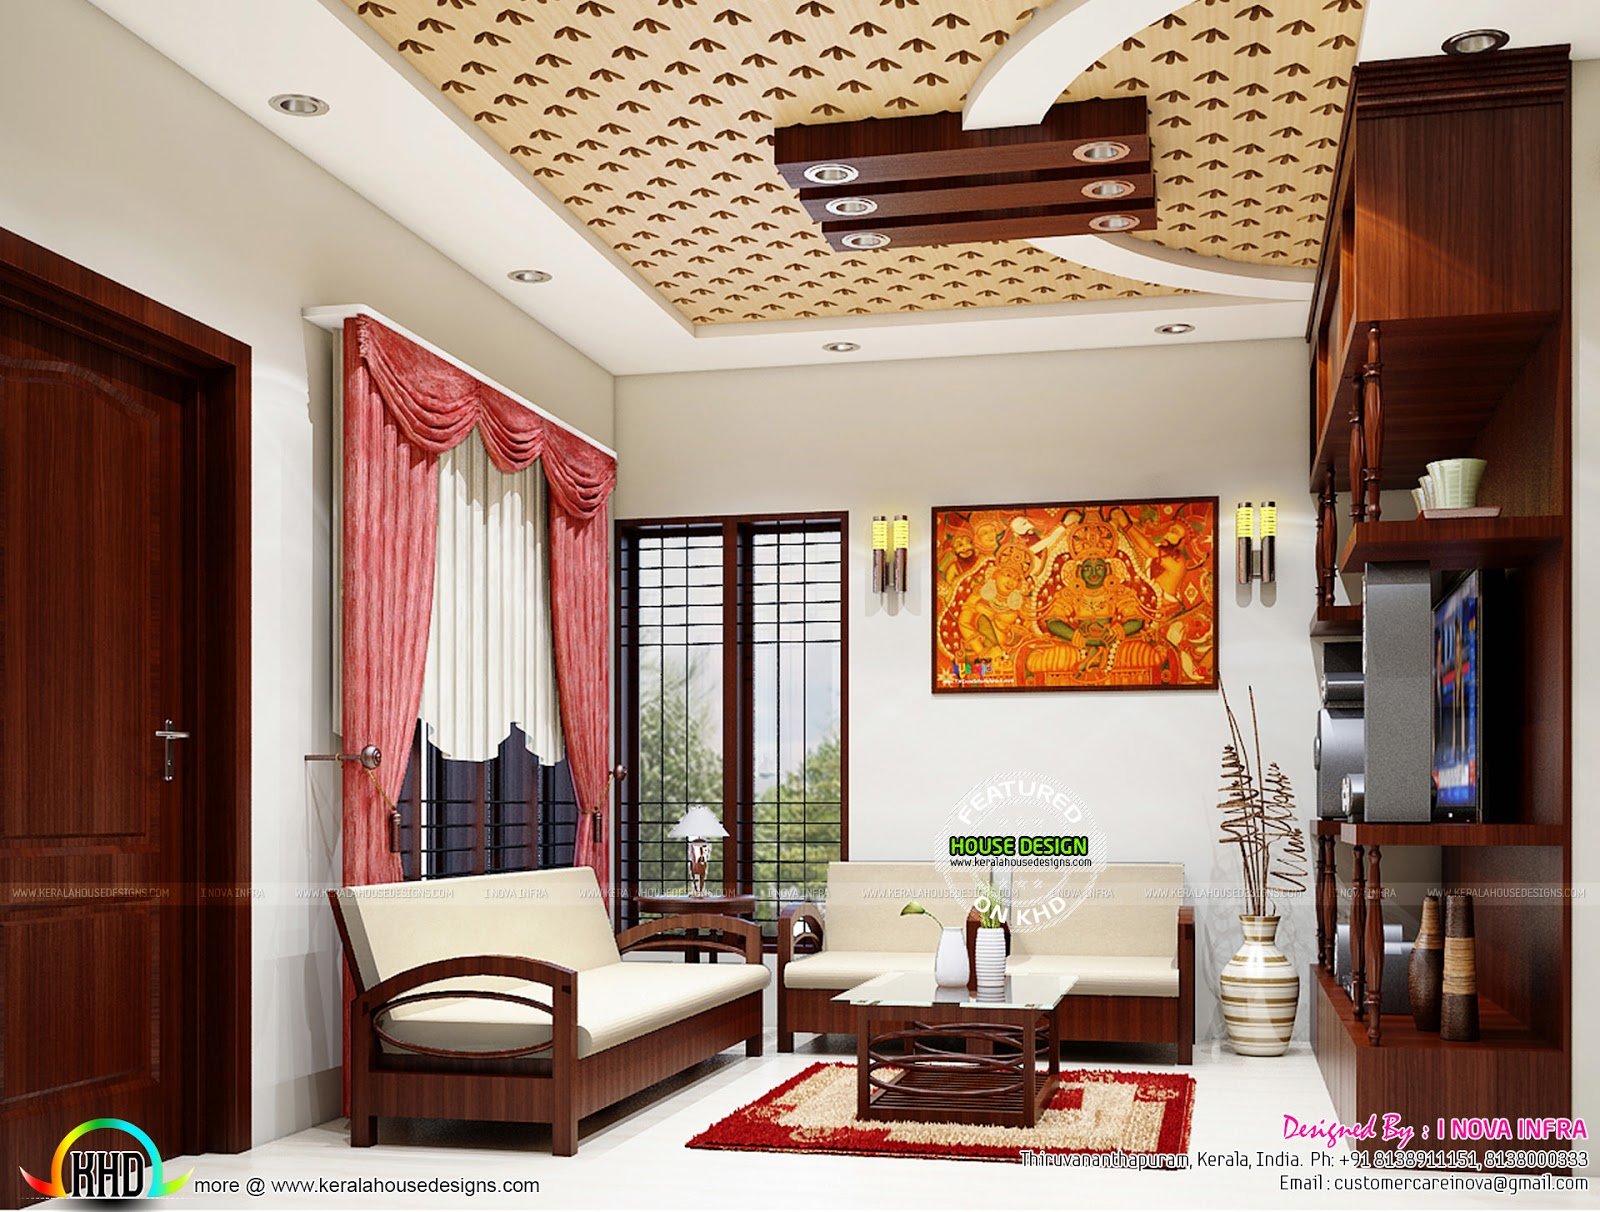 Kerala traditional interiors kerala home design and for House interior design kerala photos